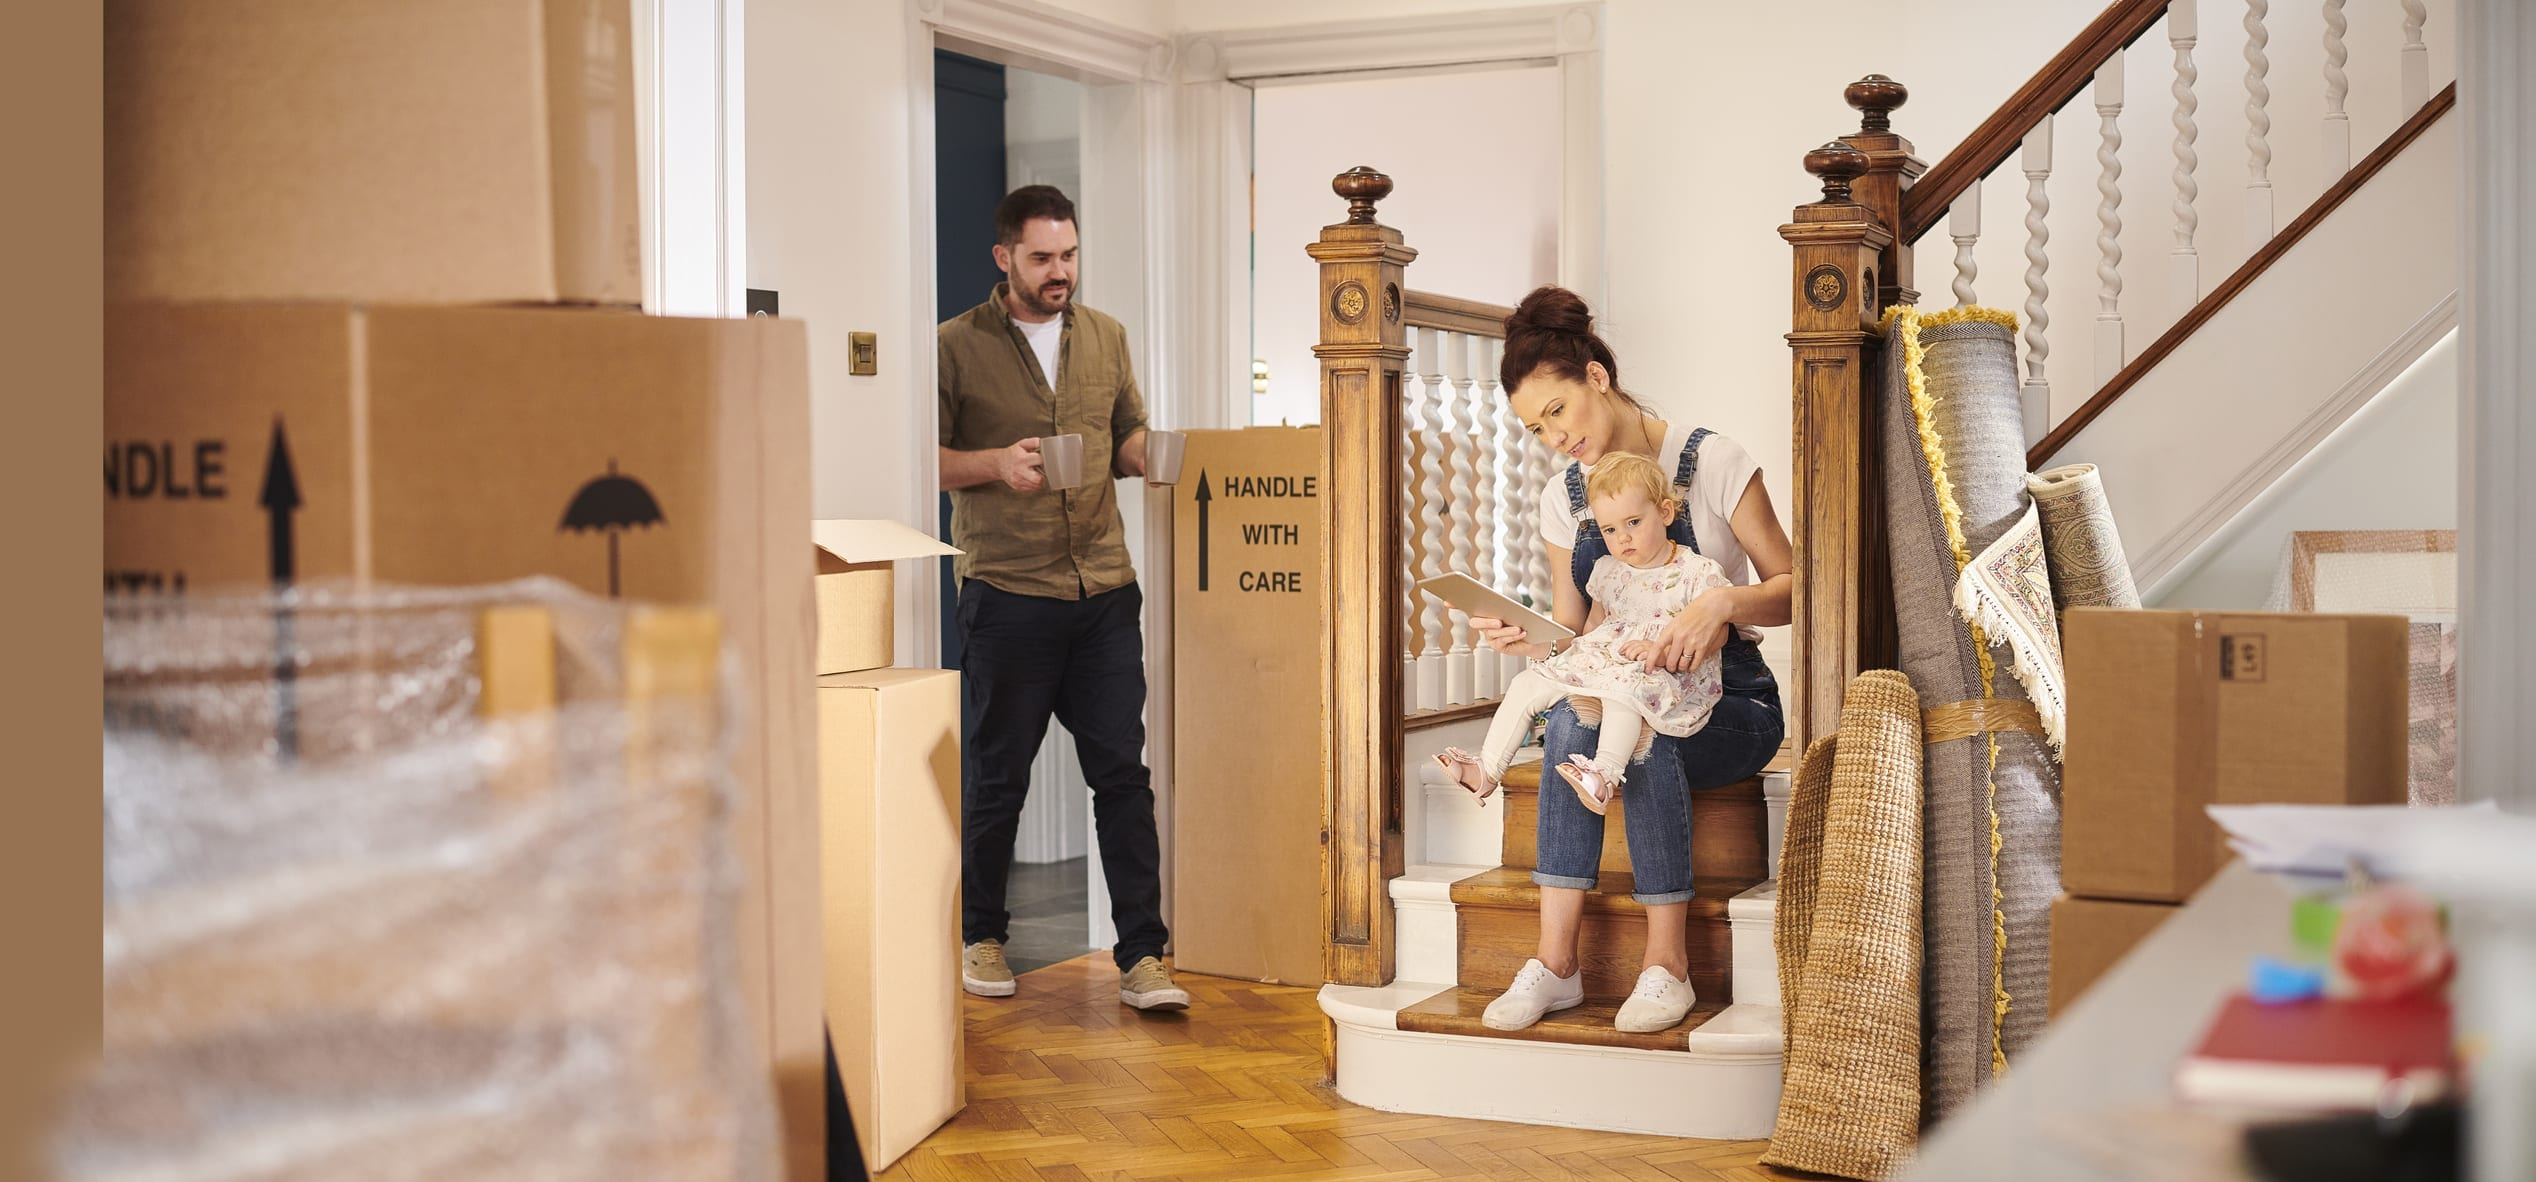 a young family move into their new home